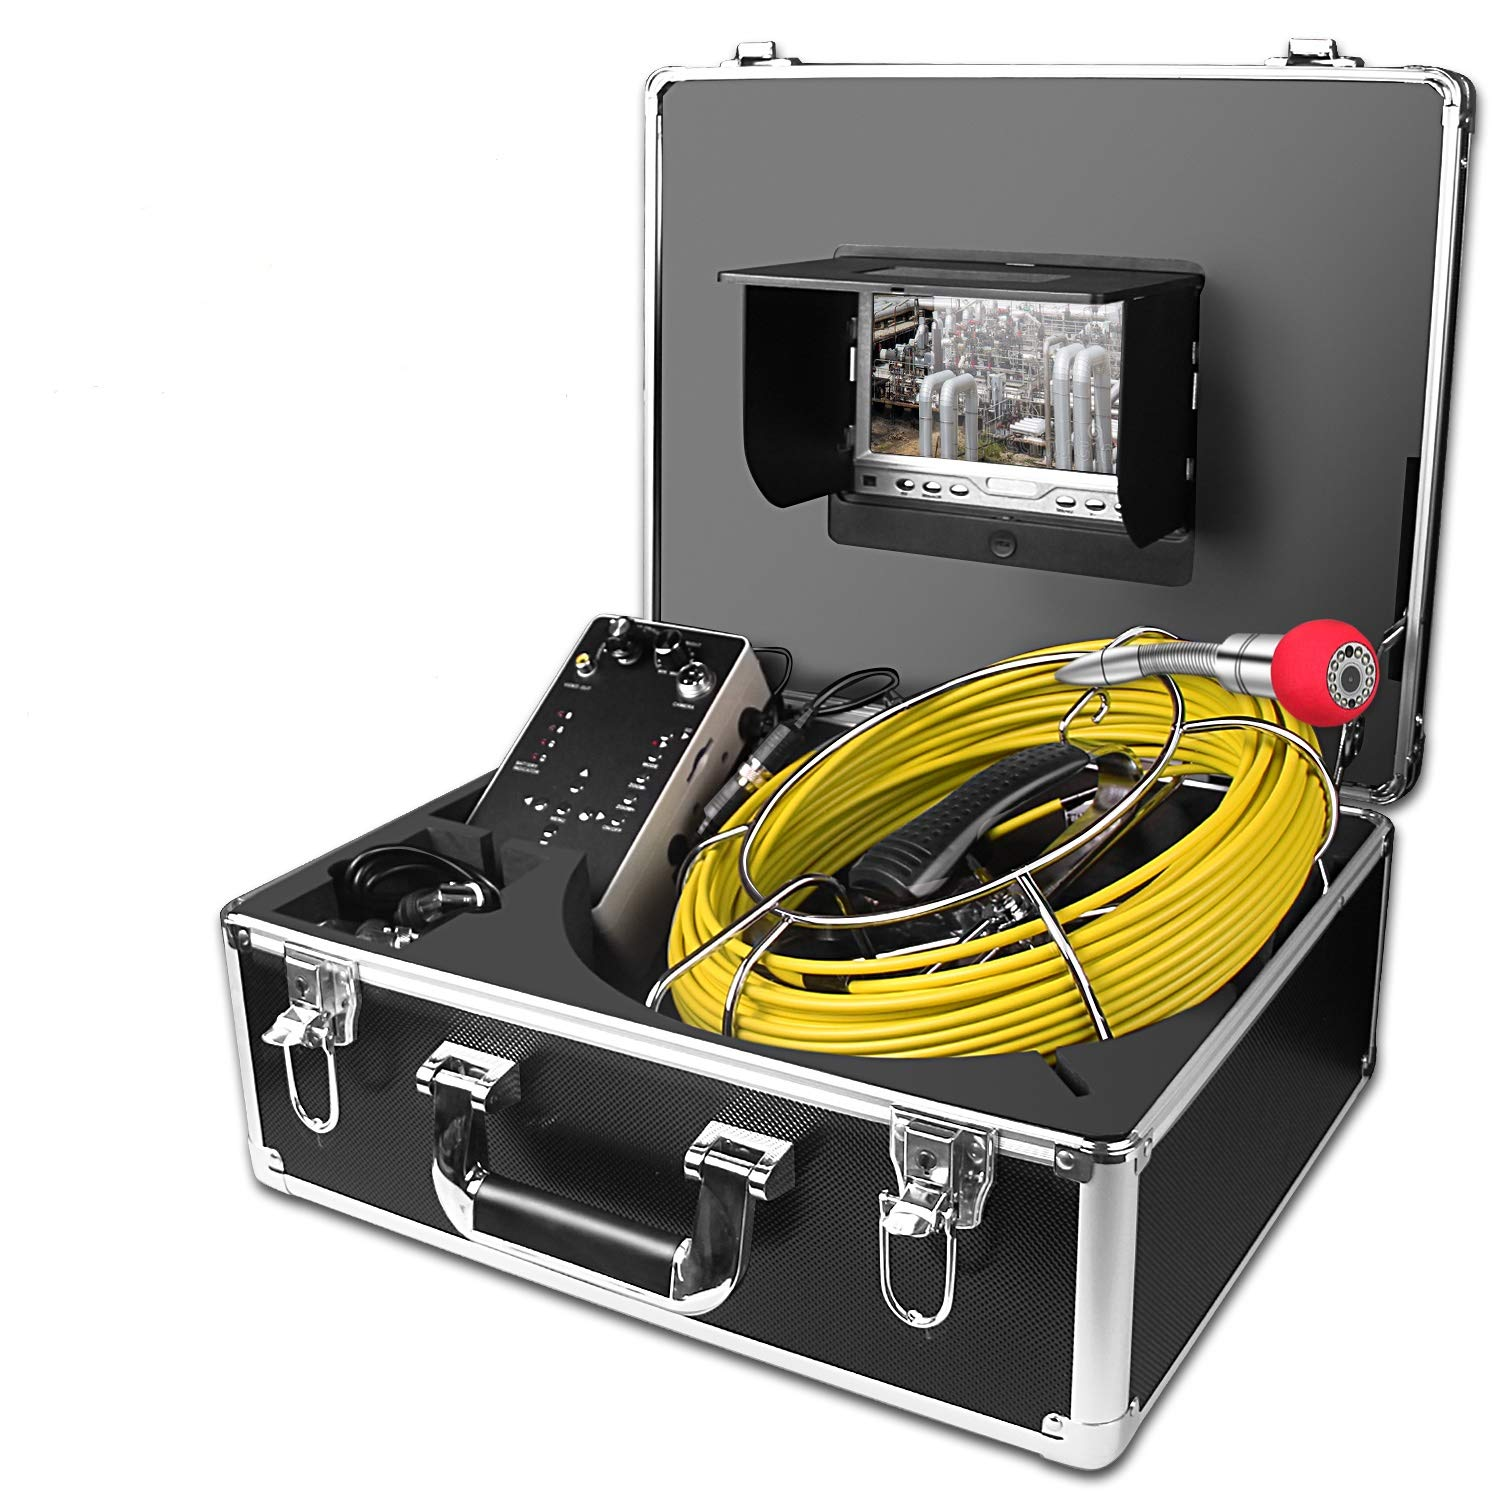 Sewer Camera,Anysun 50m/164ft Drain Pipe Inspection Cameras-Snake Cam Video Inspection Camera With 7 Inches LCD Monitor and Locator(Include 8GB SD Card)